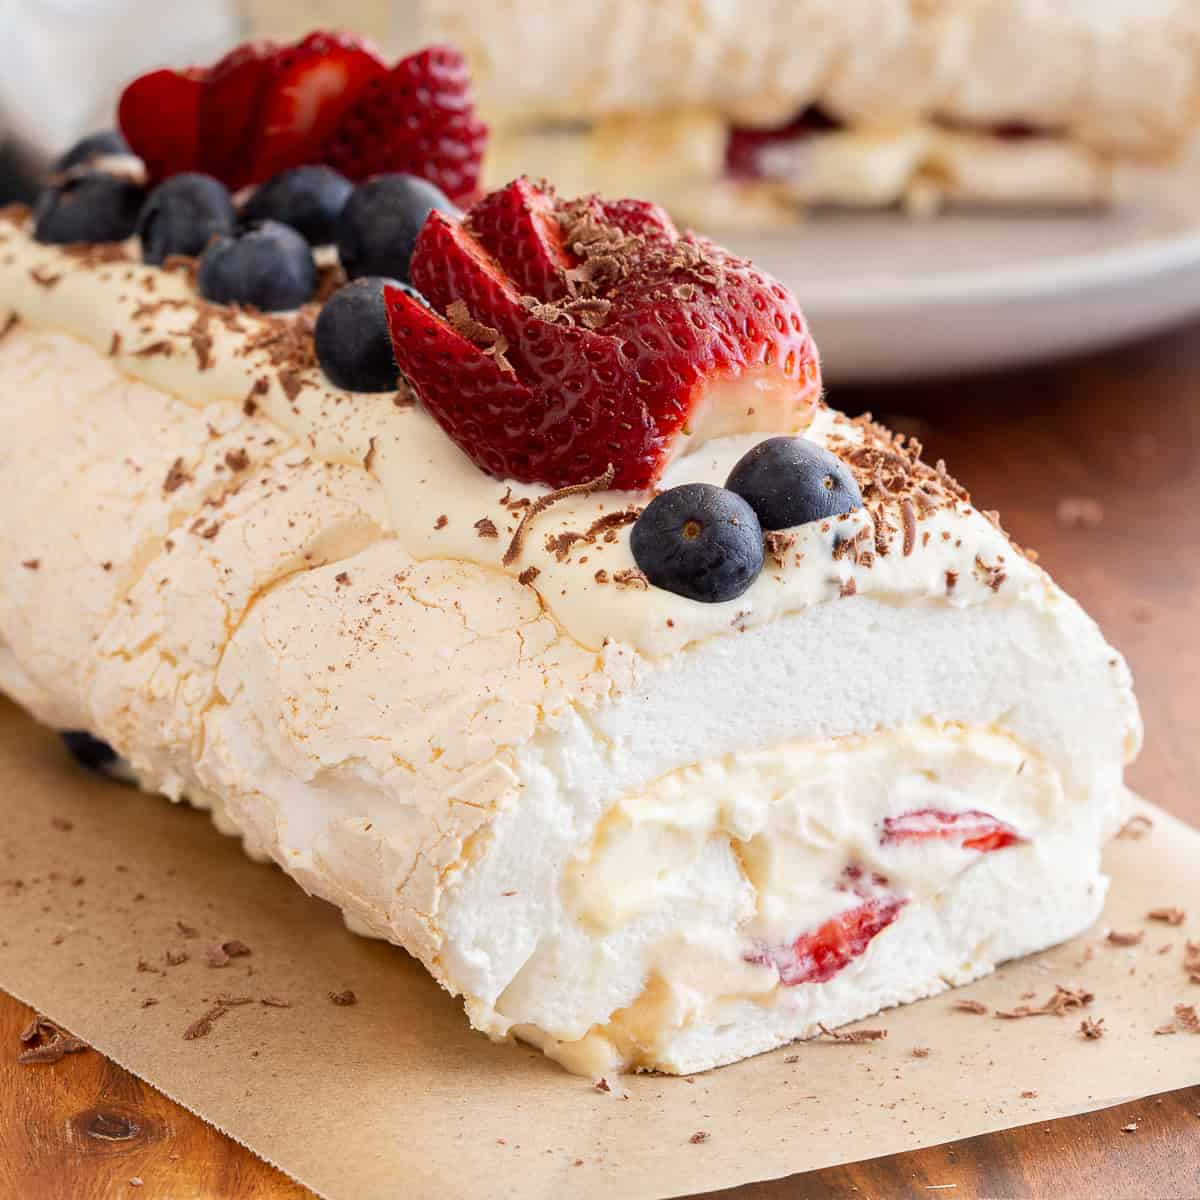 Pavlova roll with berries on a wooden board.